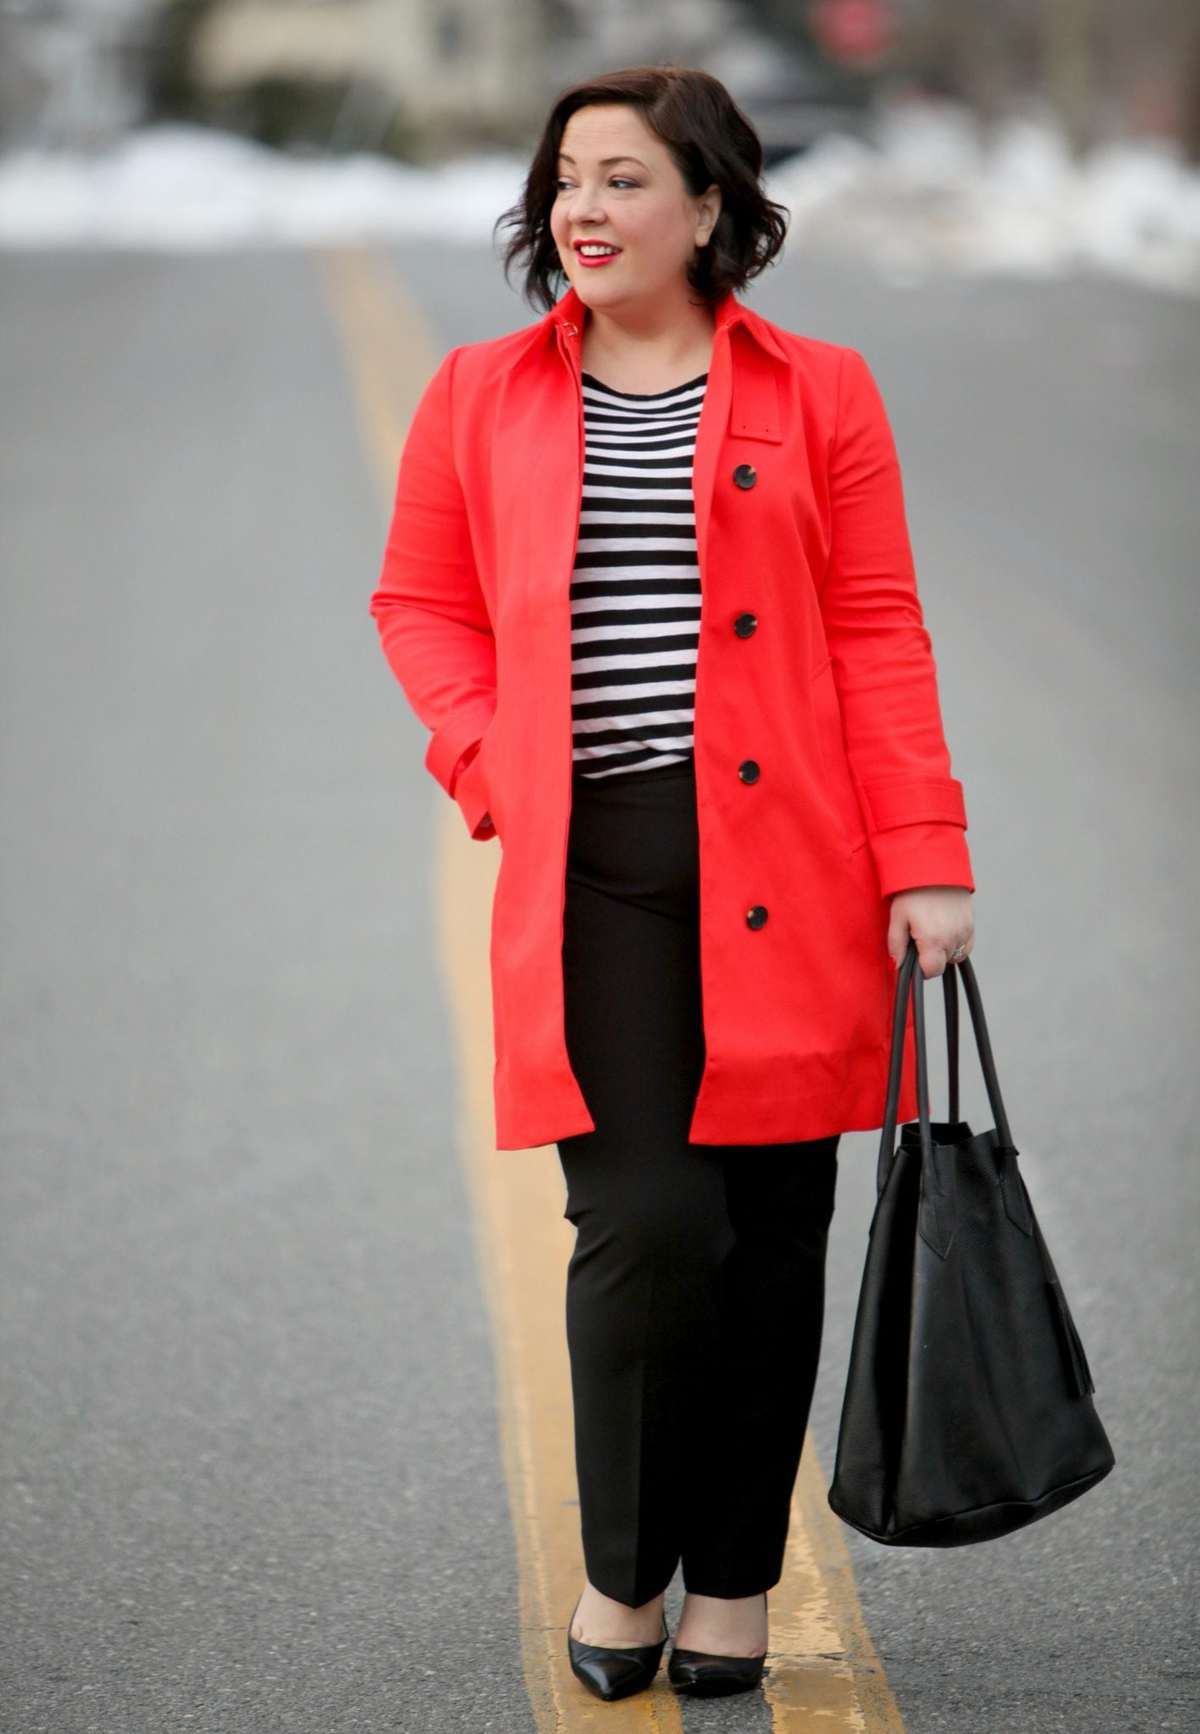 Wardrobe Oxygen wearing an orange Ann Taylor trench with black and white stripes